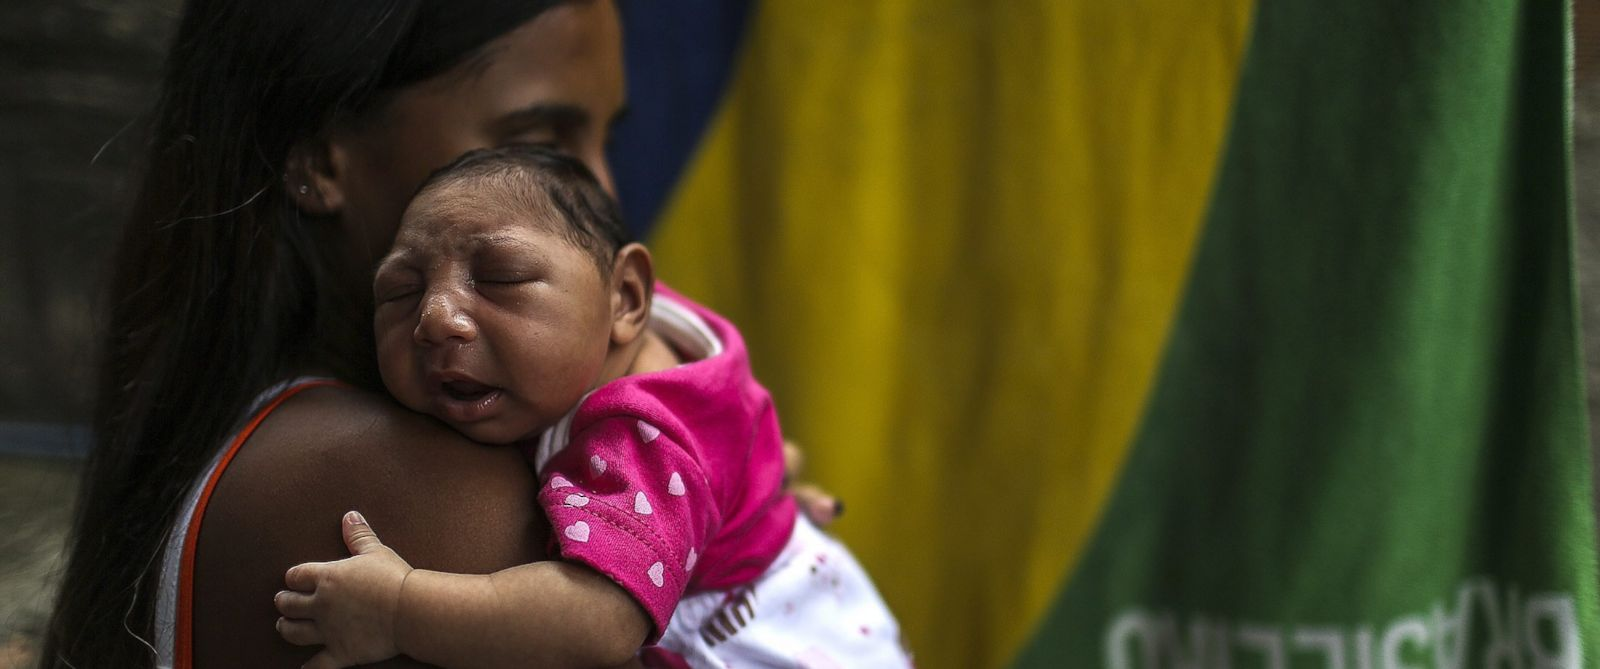 PHOTO: Leticia de Araujo holds her daughter, one-month-old Manuelly Araujo da Cruz, who was born with microcephaly after being exposed to the zika virus during her mothers pregnancy is seen here, in Rio de Janeiro, Brazil, Feb. 11, 2016.